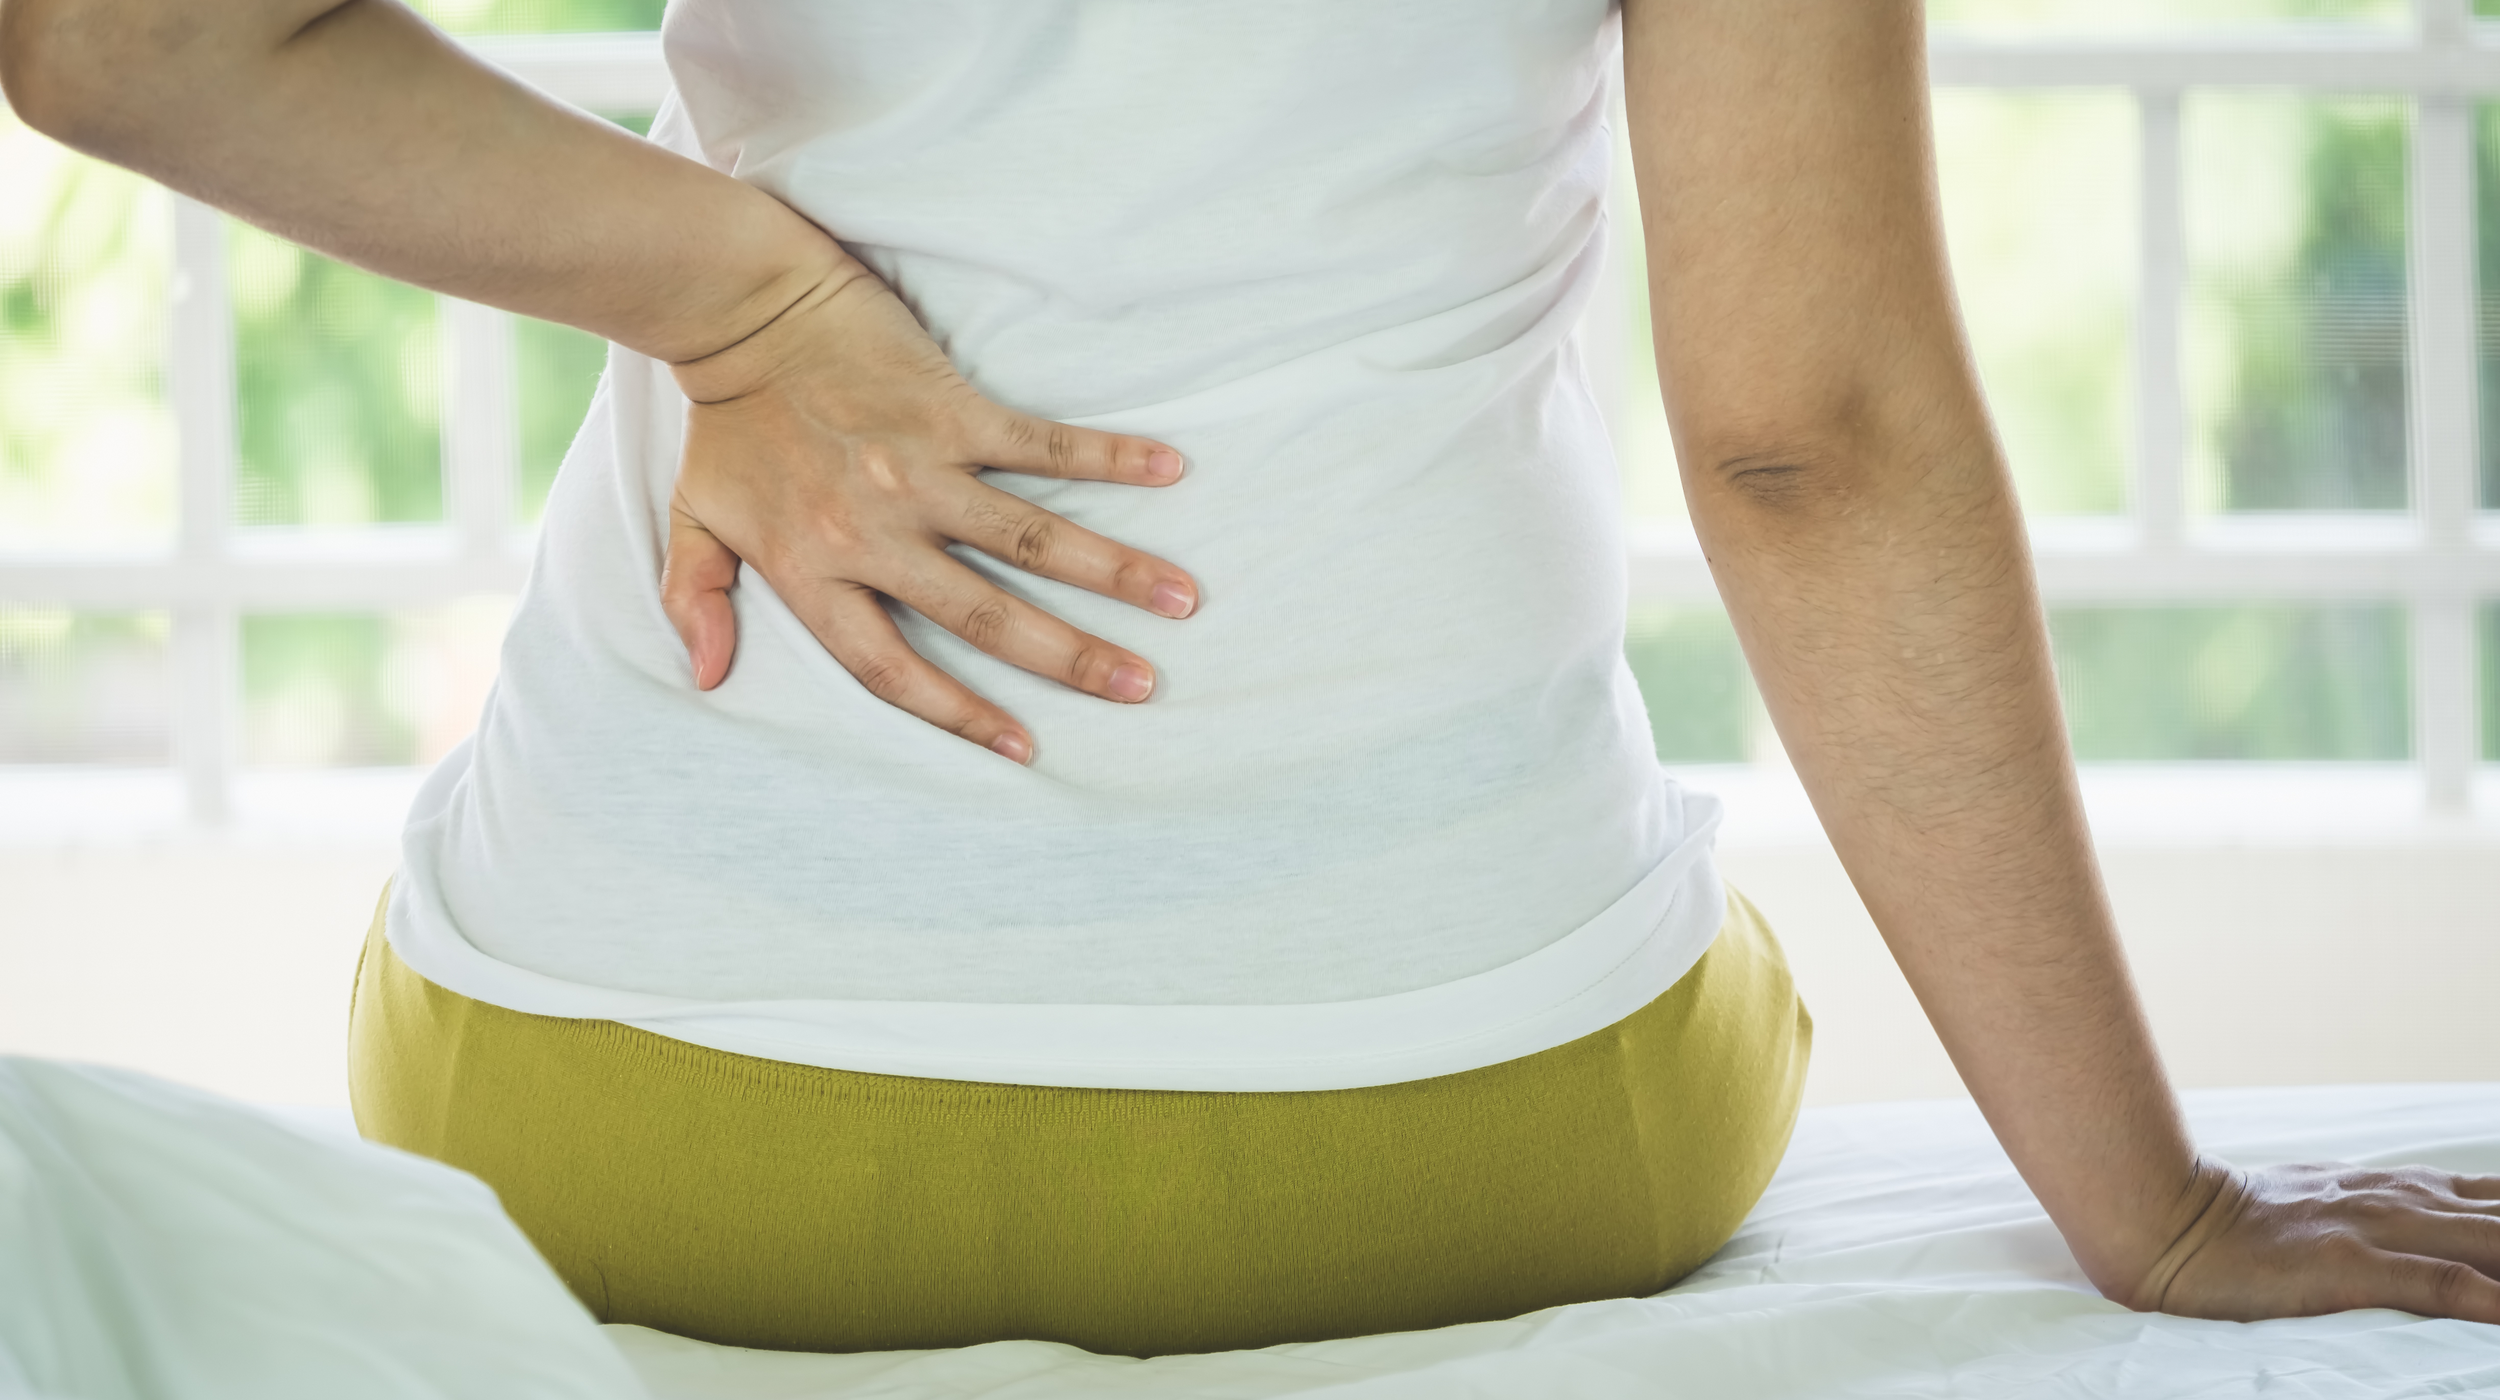 Is Improving Mobility Important for Alleviating Back Pain?